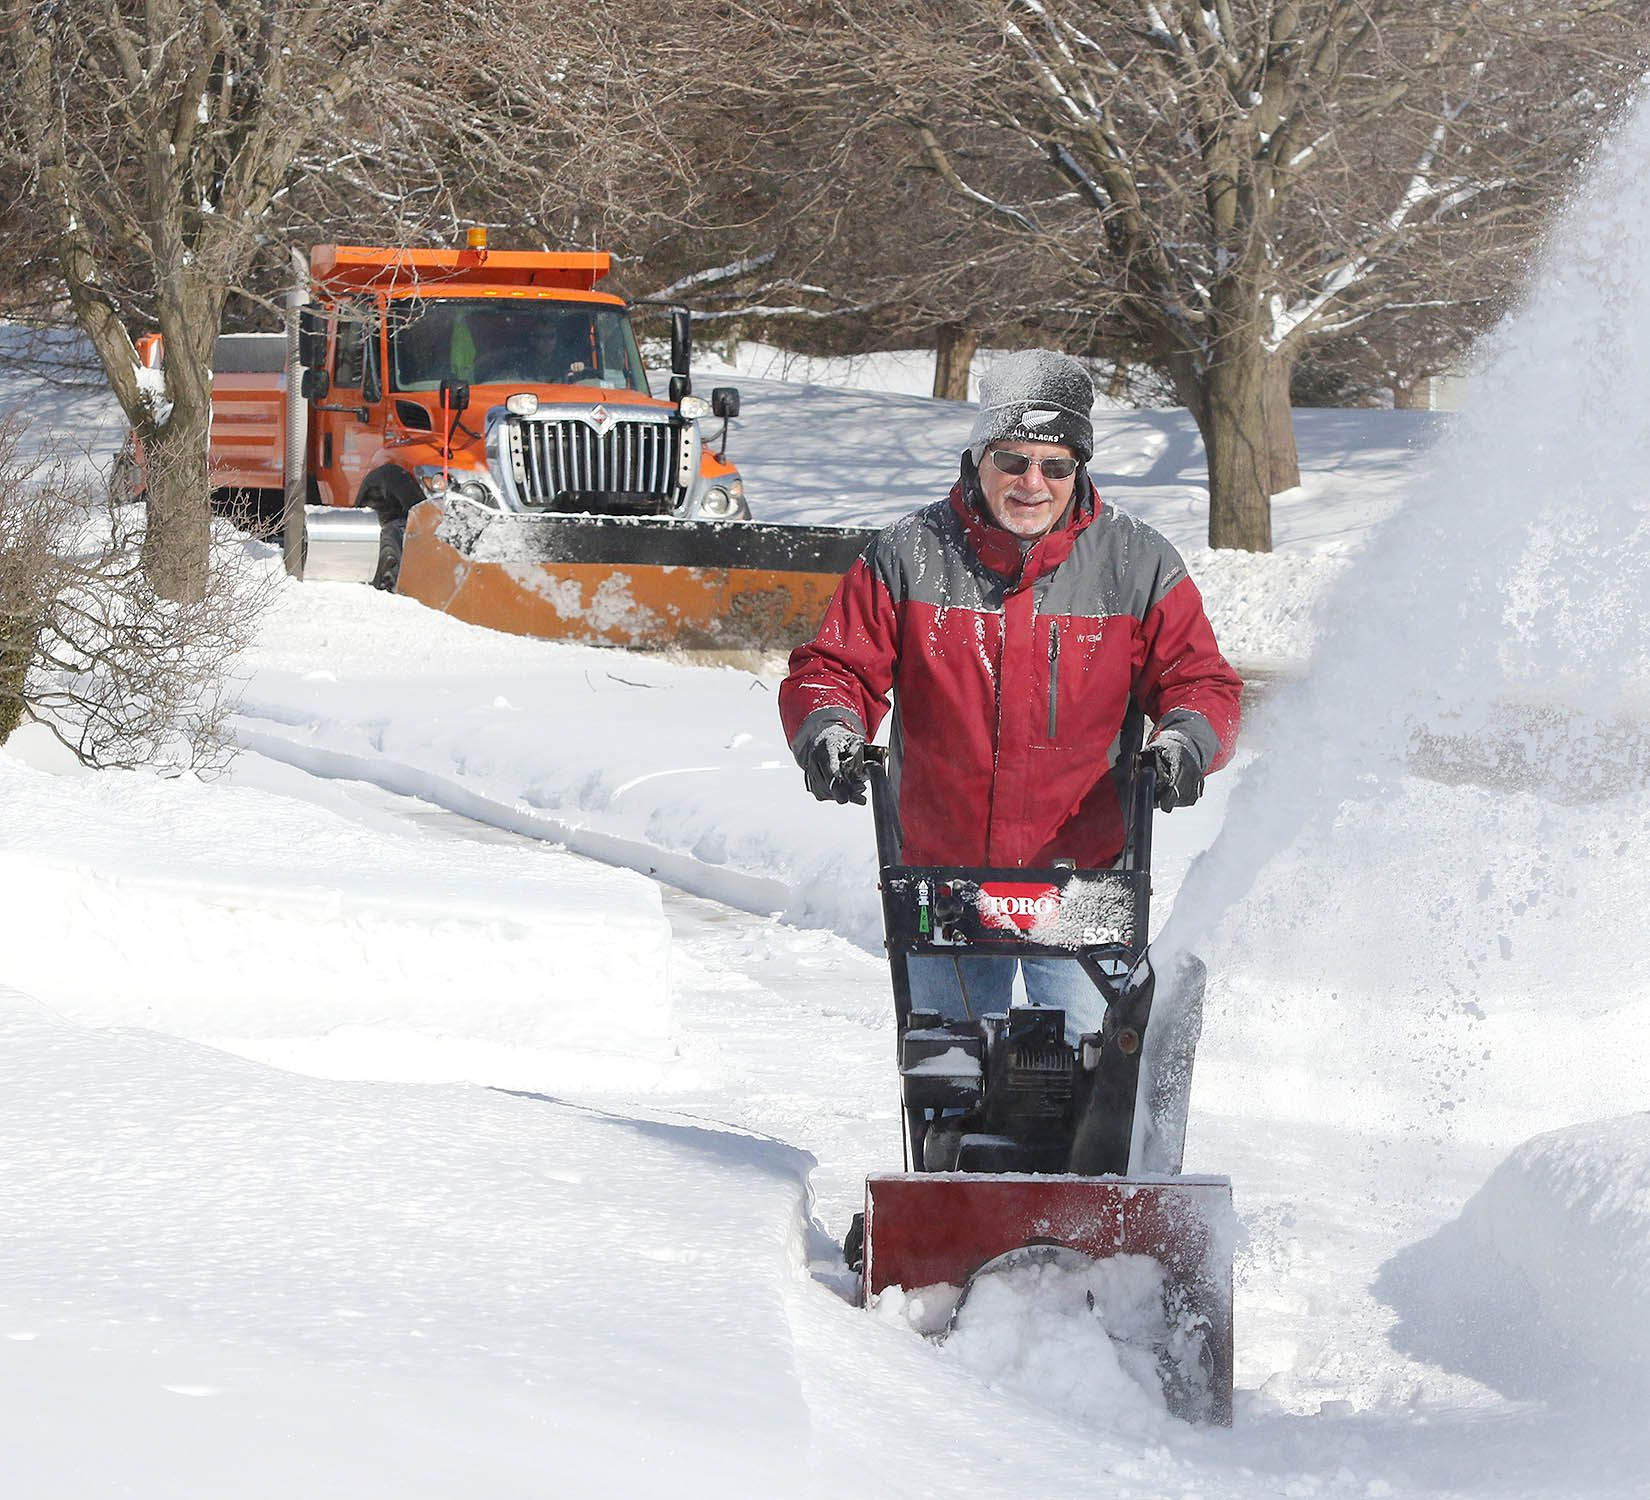 Bill Syversen uses a snowblower on the sidewalk in front of his house as a City of DeKalb snow plow does the street Tuesday morning. More snow fell Monday night adding to the several inches already on the ground.